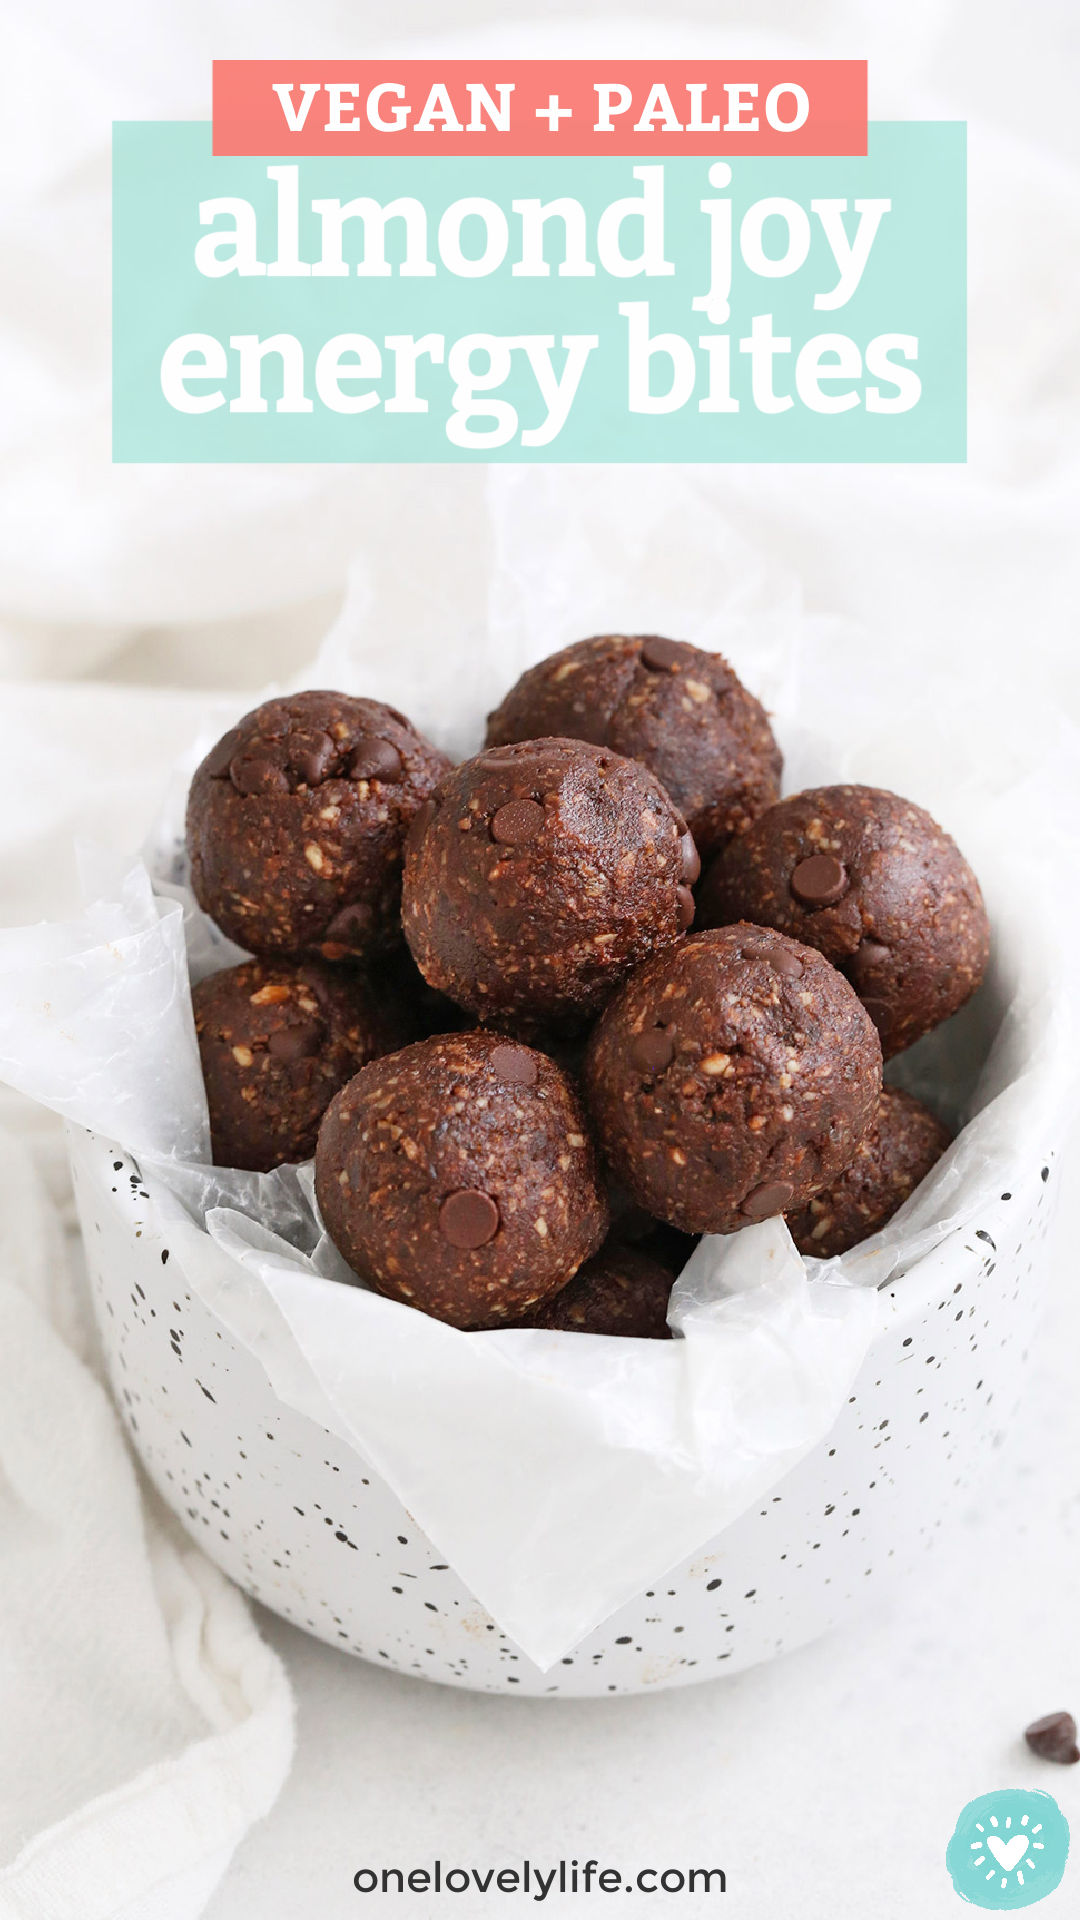 """Almond Joy Energy Bites in a white bowl with speckles with Text Overlay that reads """"vegan + paleo almond joy energy bites"""""""